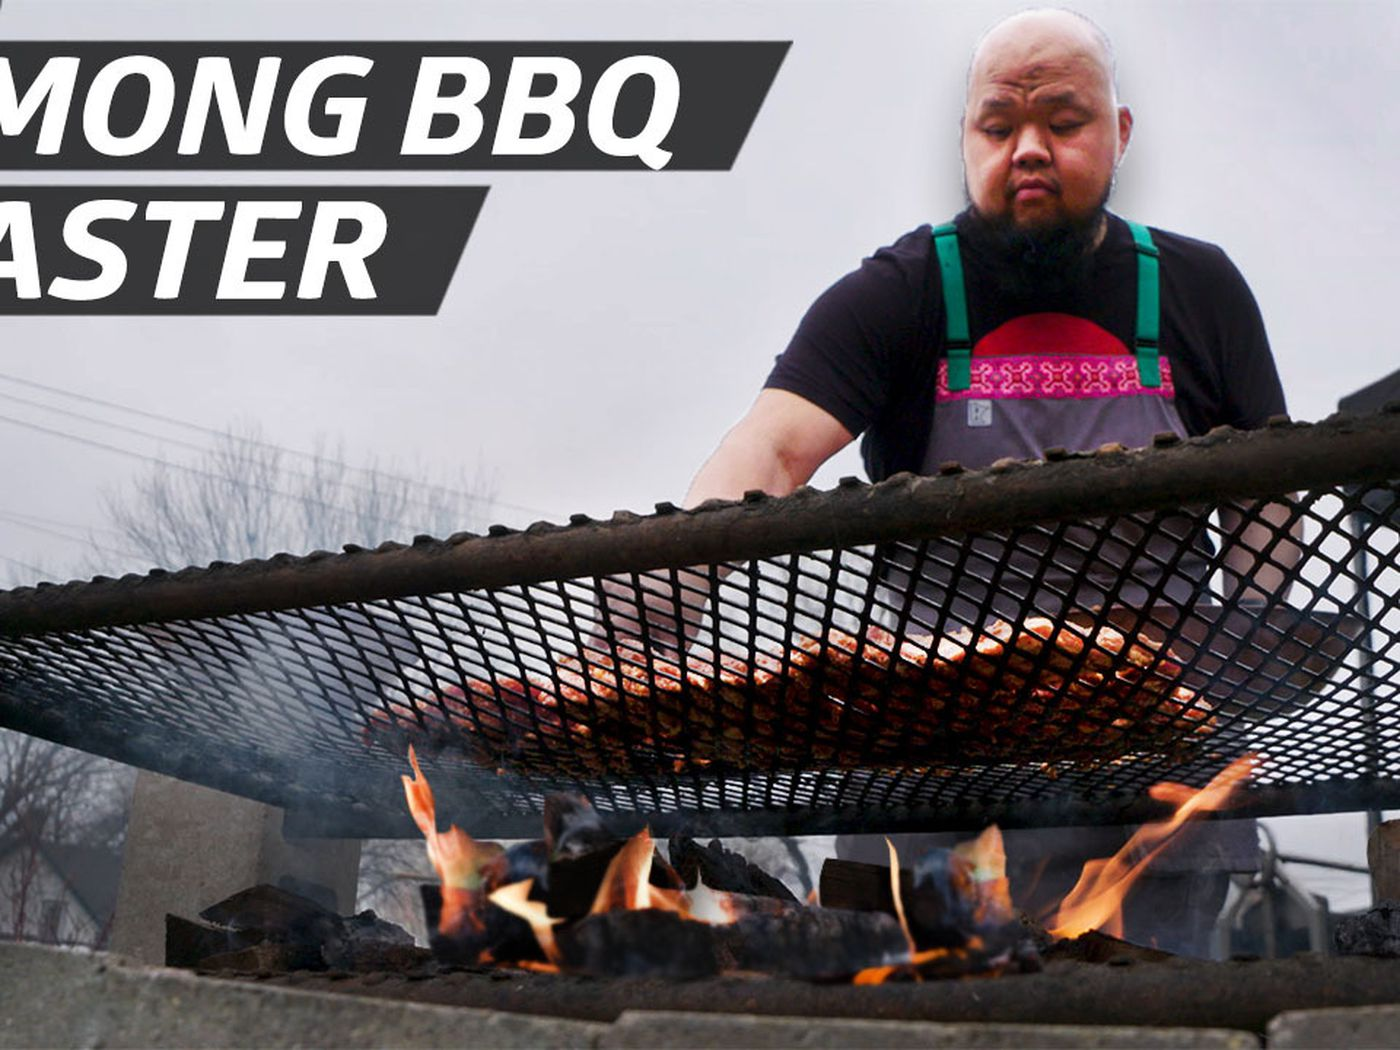 Chef Yia Cooks Hmong Food And Dishes Over An Open Fire Grill Eater